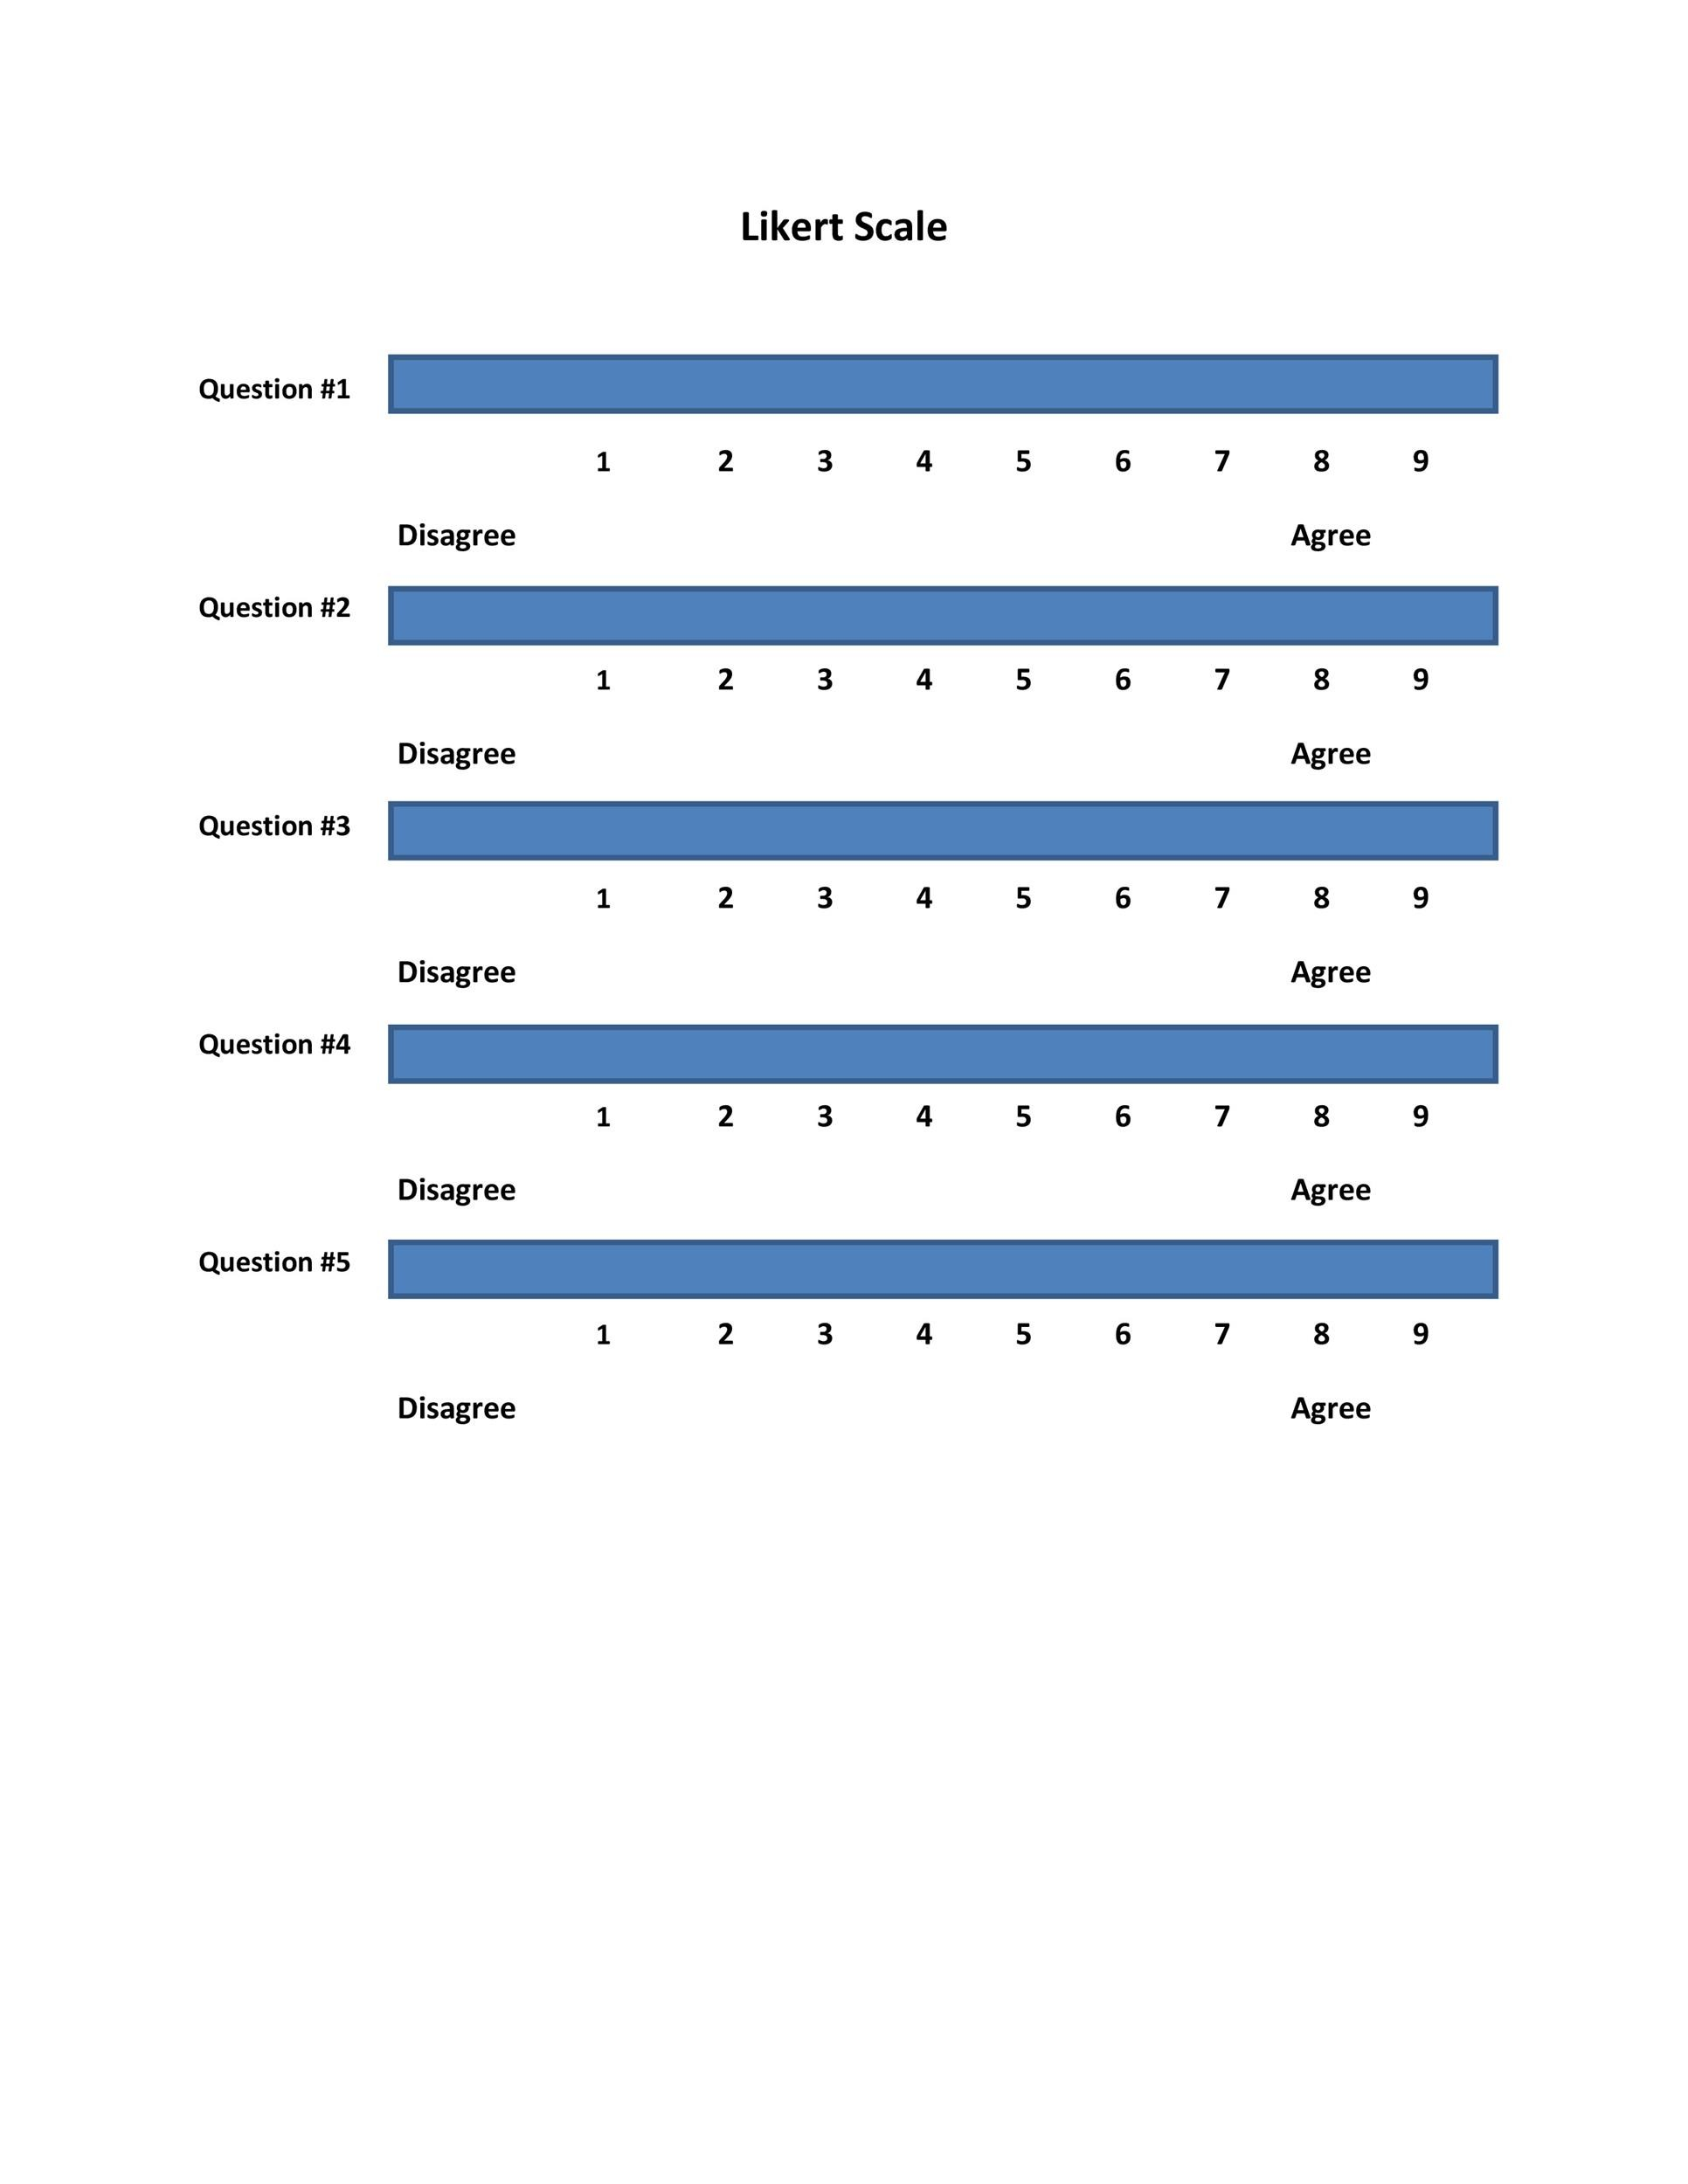 likert scale template word - Thevillas - Likert Scale Template